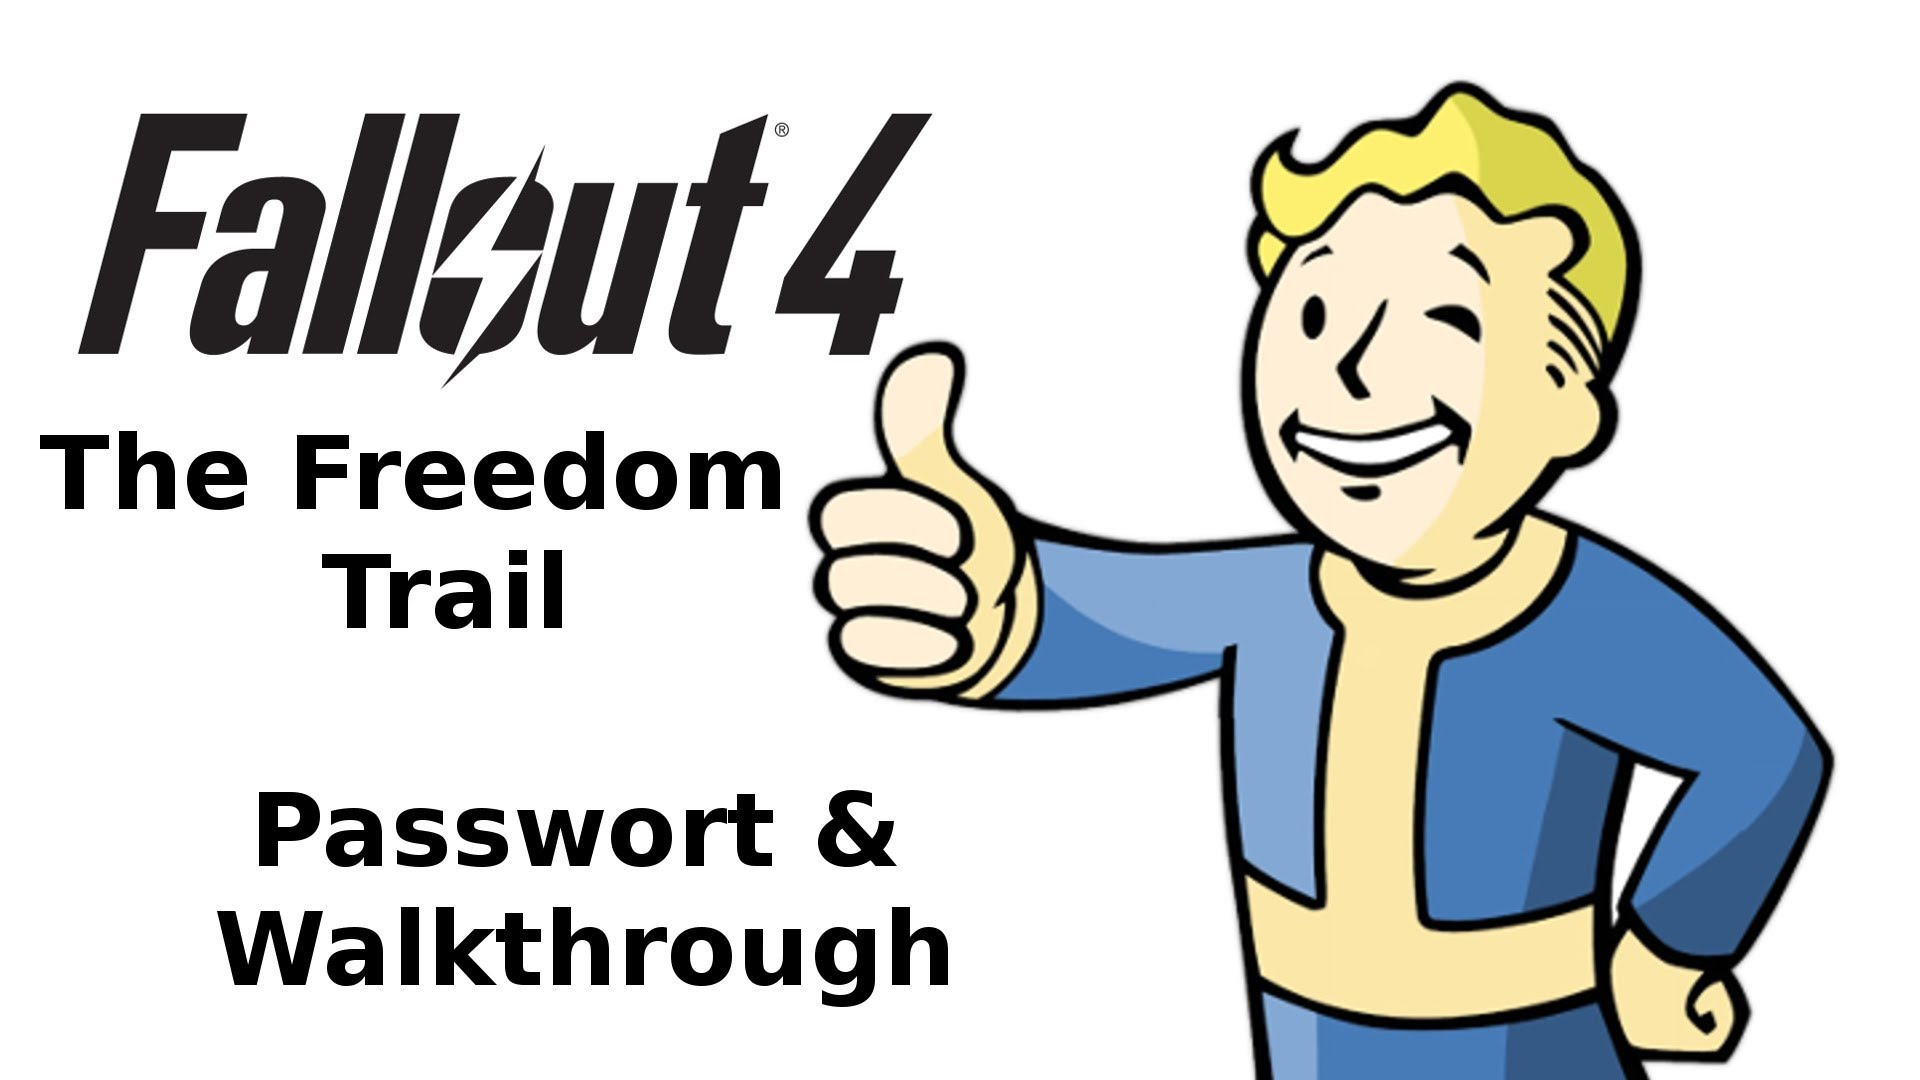 Der weg clipart clip black and white download Fallout 4 - The Freedom Trail - Password & Walkthrough / Der Weg ... clip black and white download